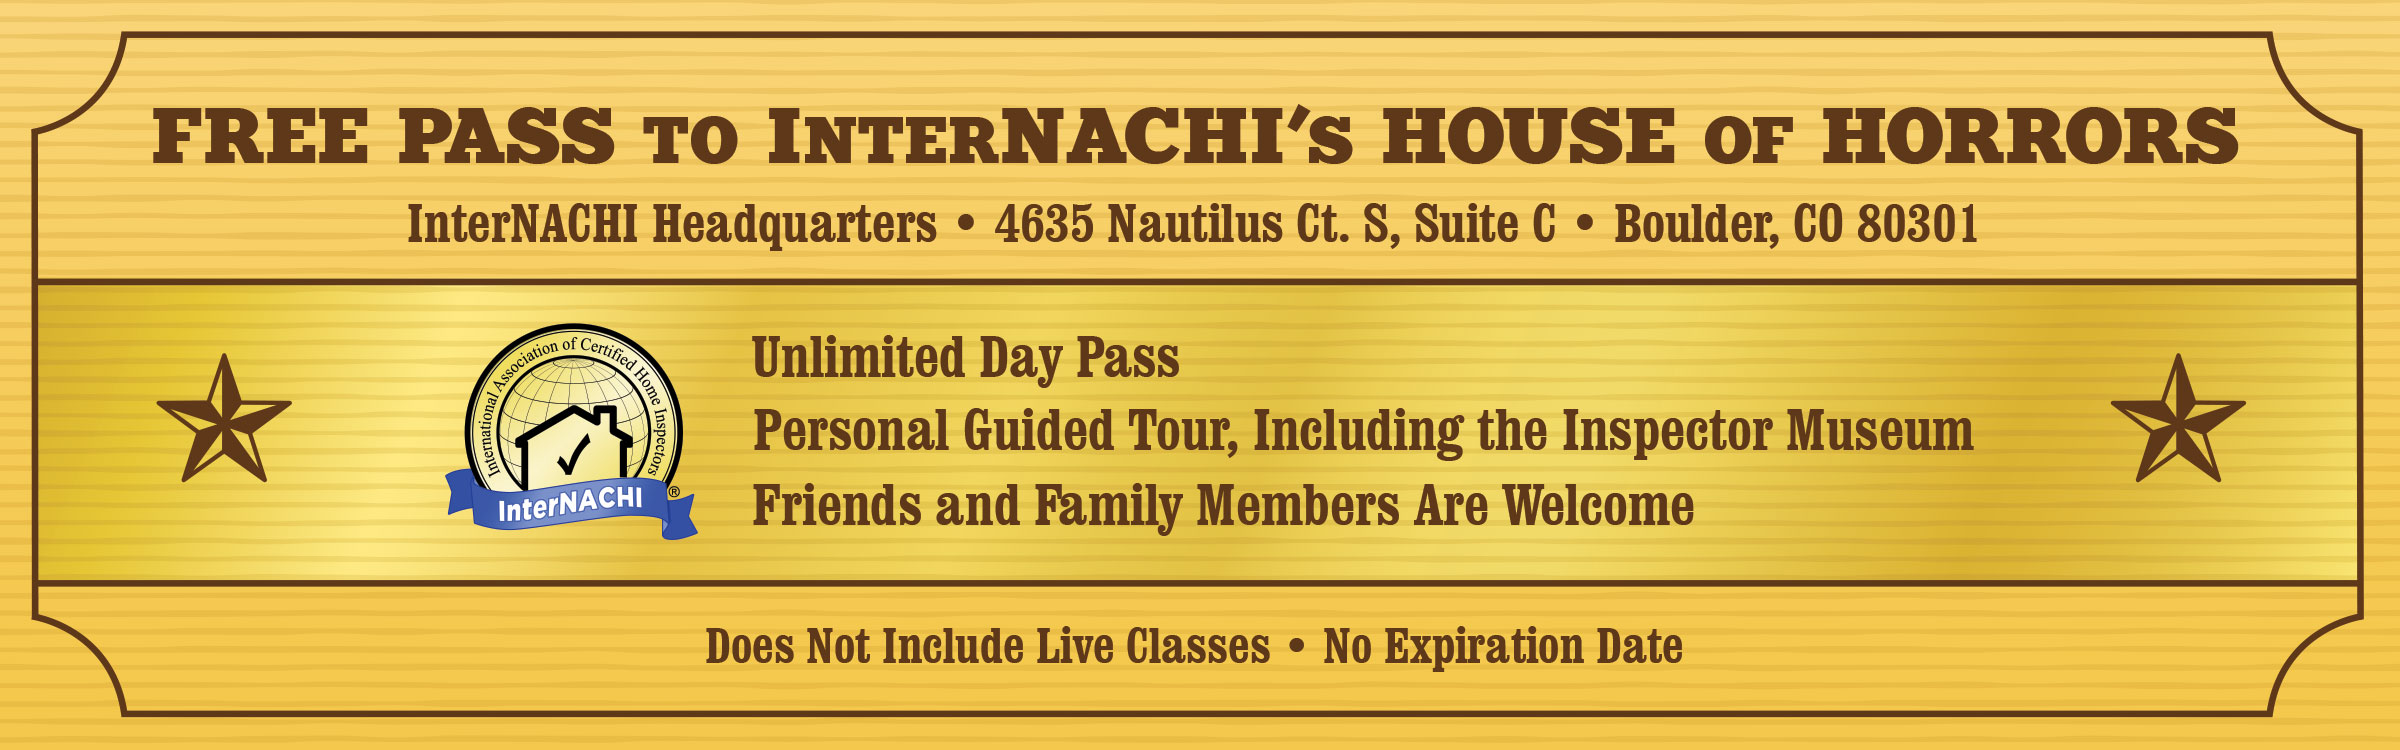 Free Pass to InterNACHI's Inspection Museum